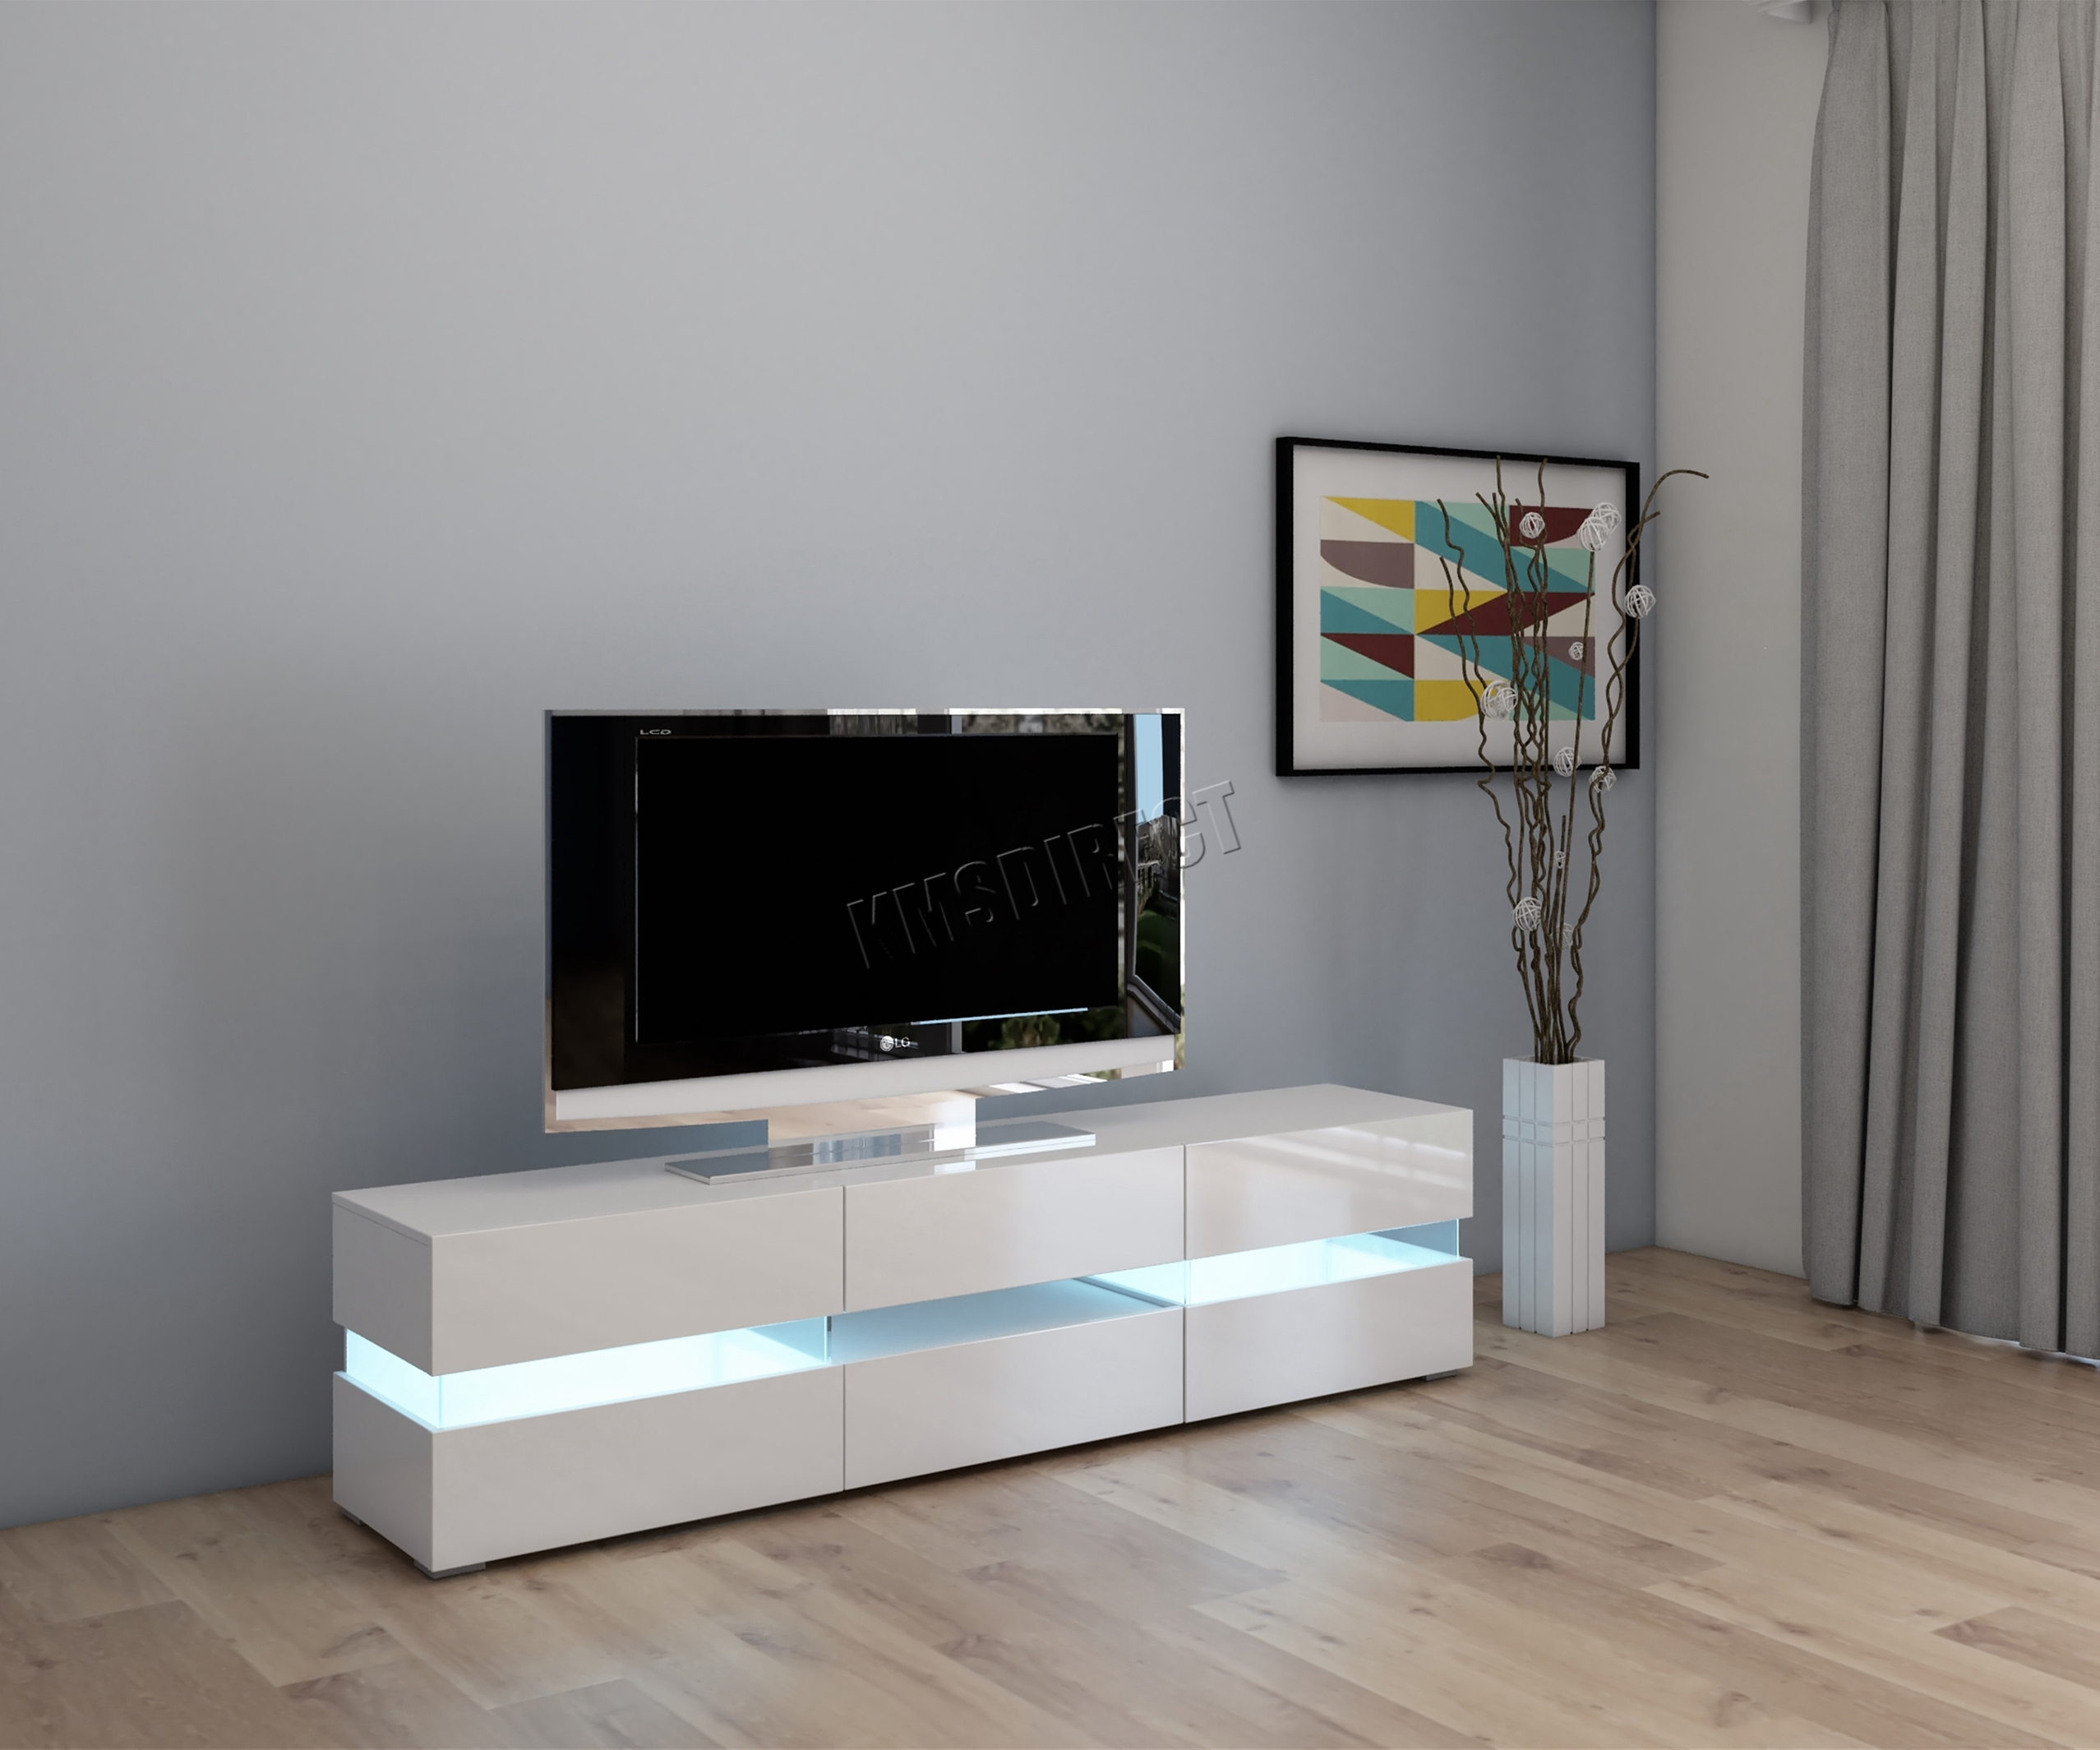 Sentinel Cosmetic Damaged Modern High Gloss Matt Tv Cabinet Unit Stand White Rgb Led